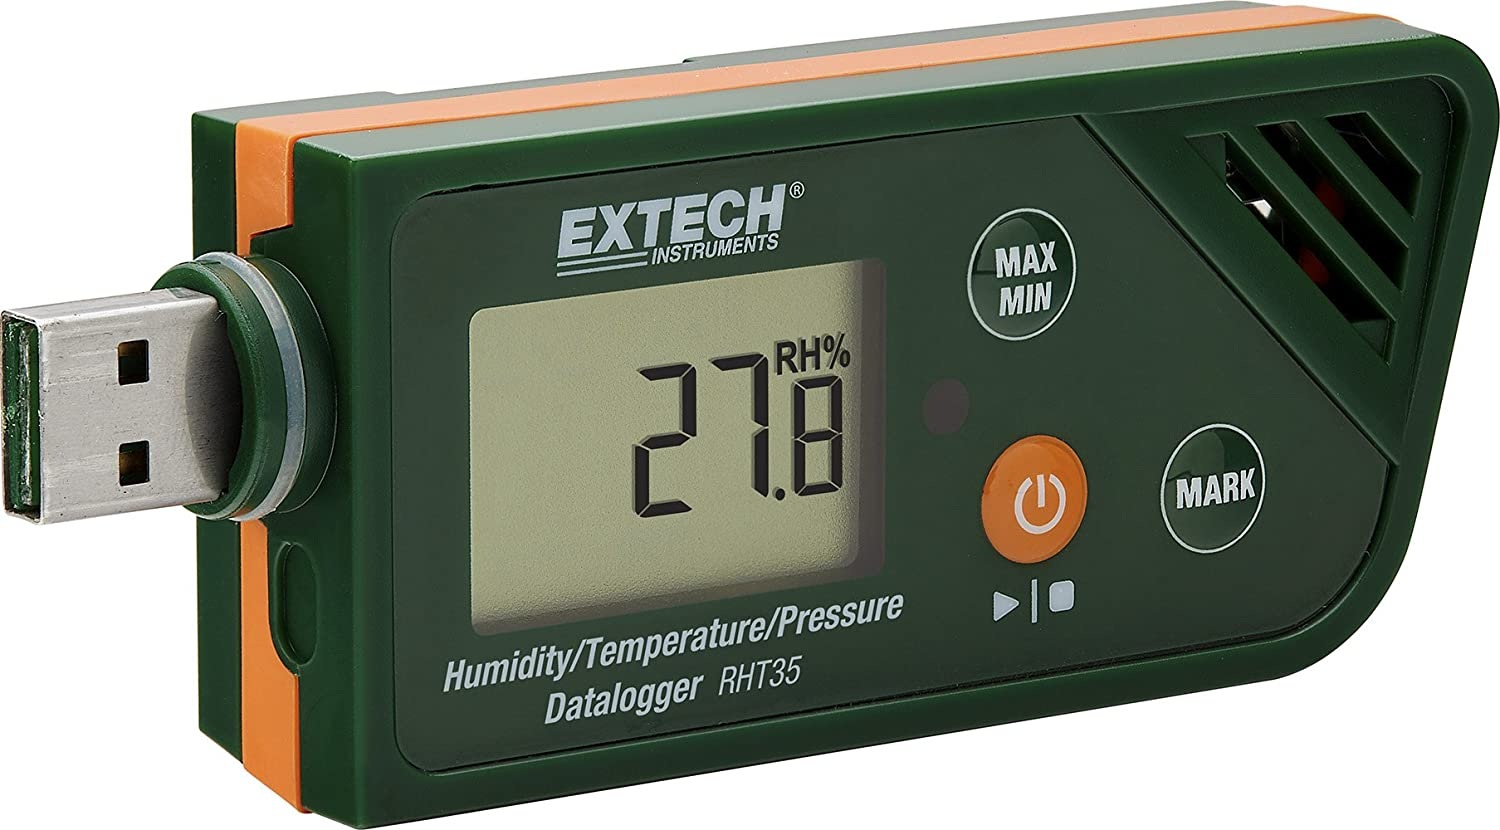 Limited time sale Extech RHT35 USB Bargain Humidity Temperature Pressure Datalogger and